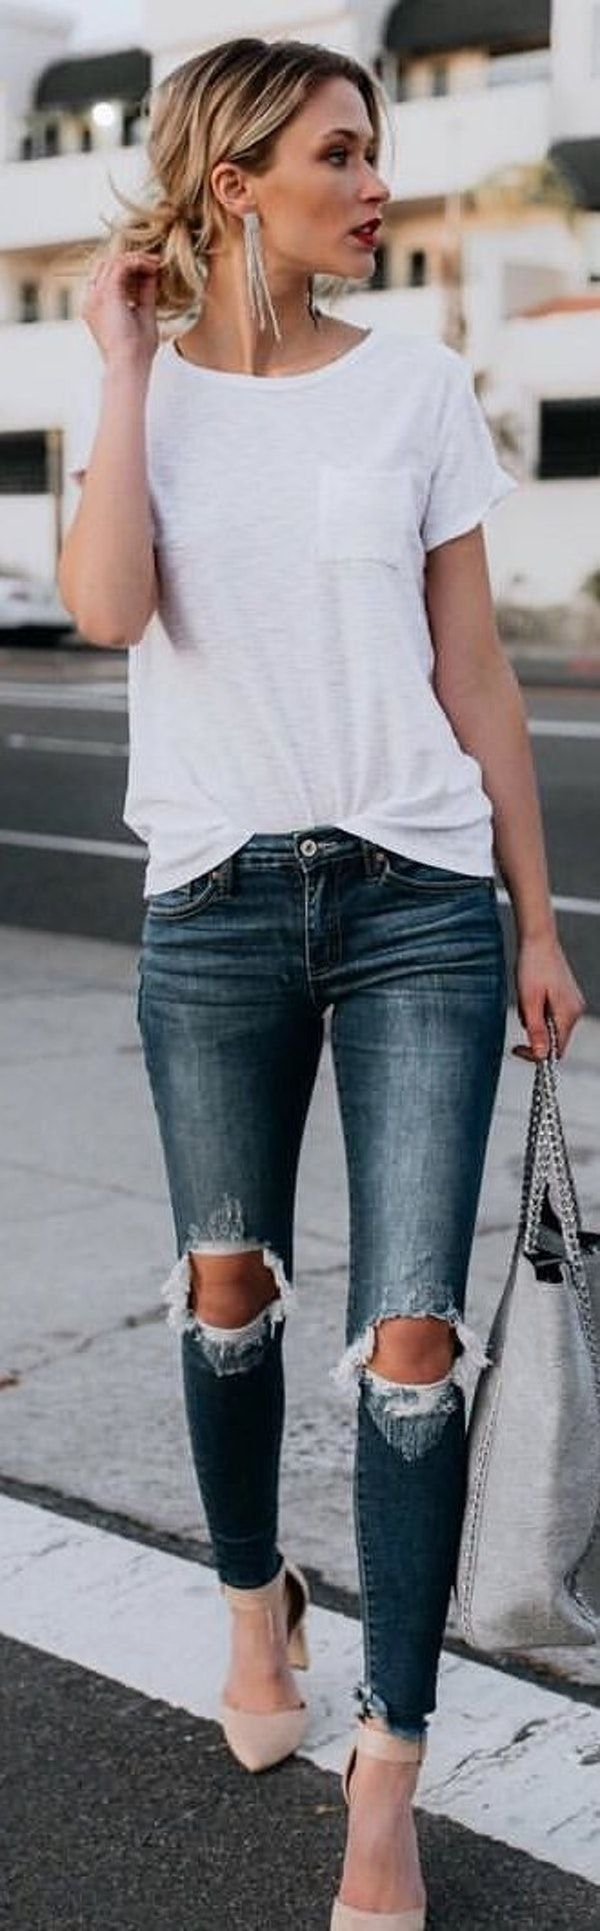 #spring #outfits  woman in white t-shirt holding gray handbag. Pic by @vicidolls